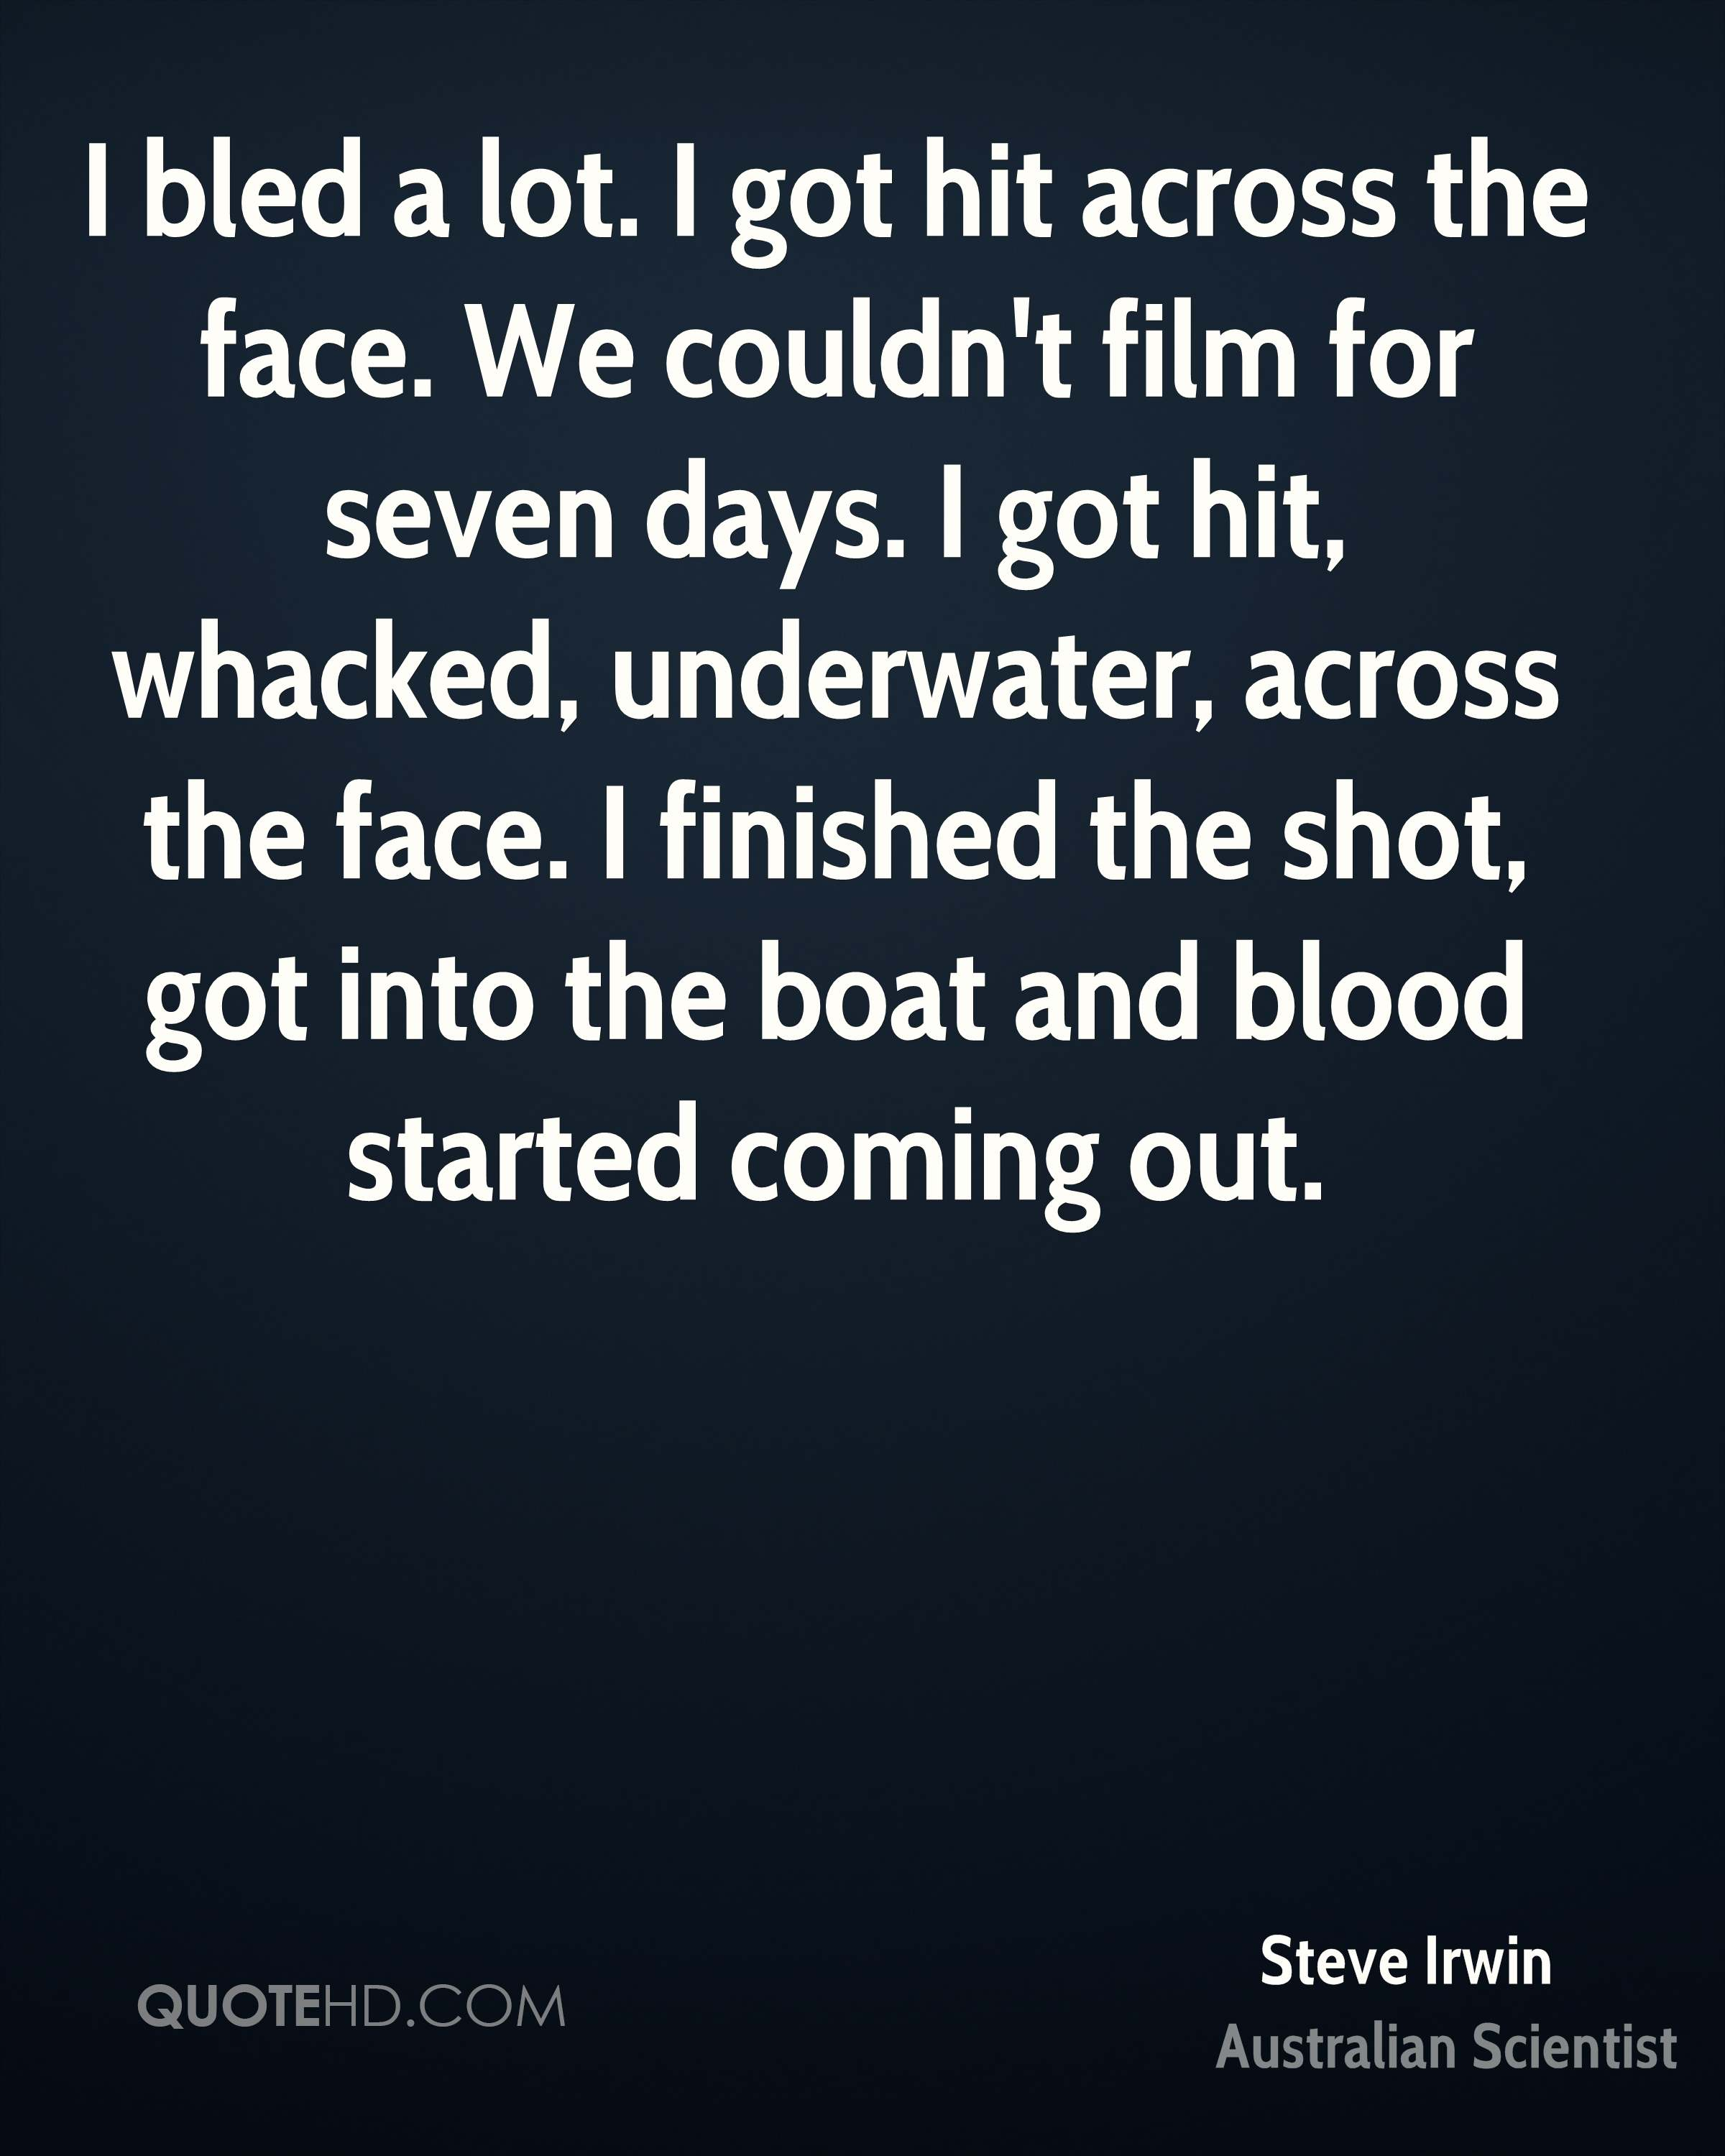 I bled a lot. I got hit across the face. We couldn't film for seven days. I got hit, whacked, underwater, across the face. I finished the shot, got into the boat and blood started coming out.